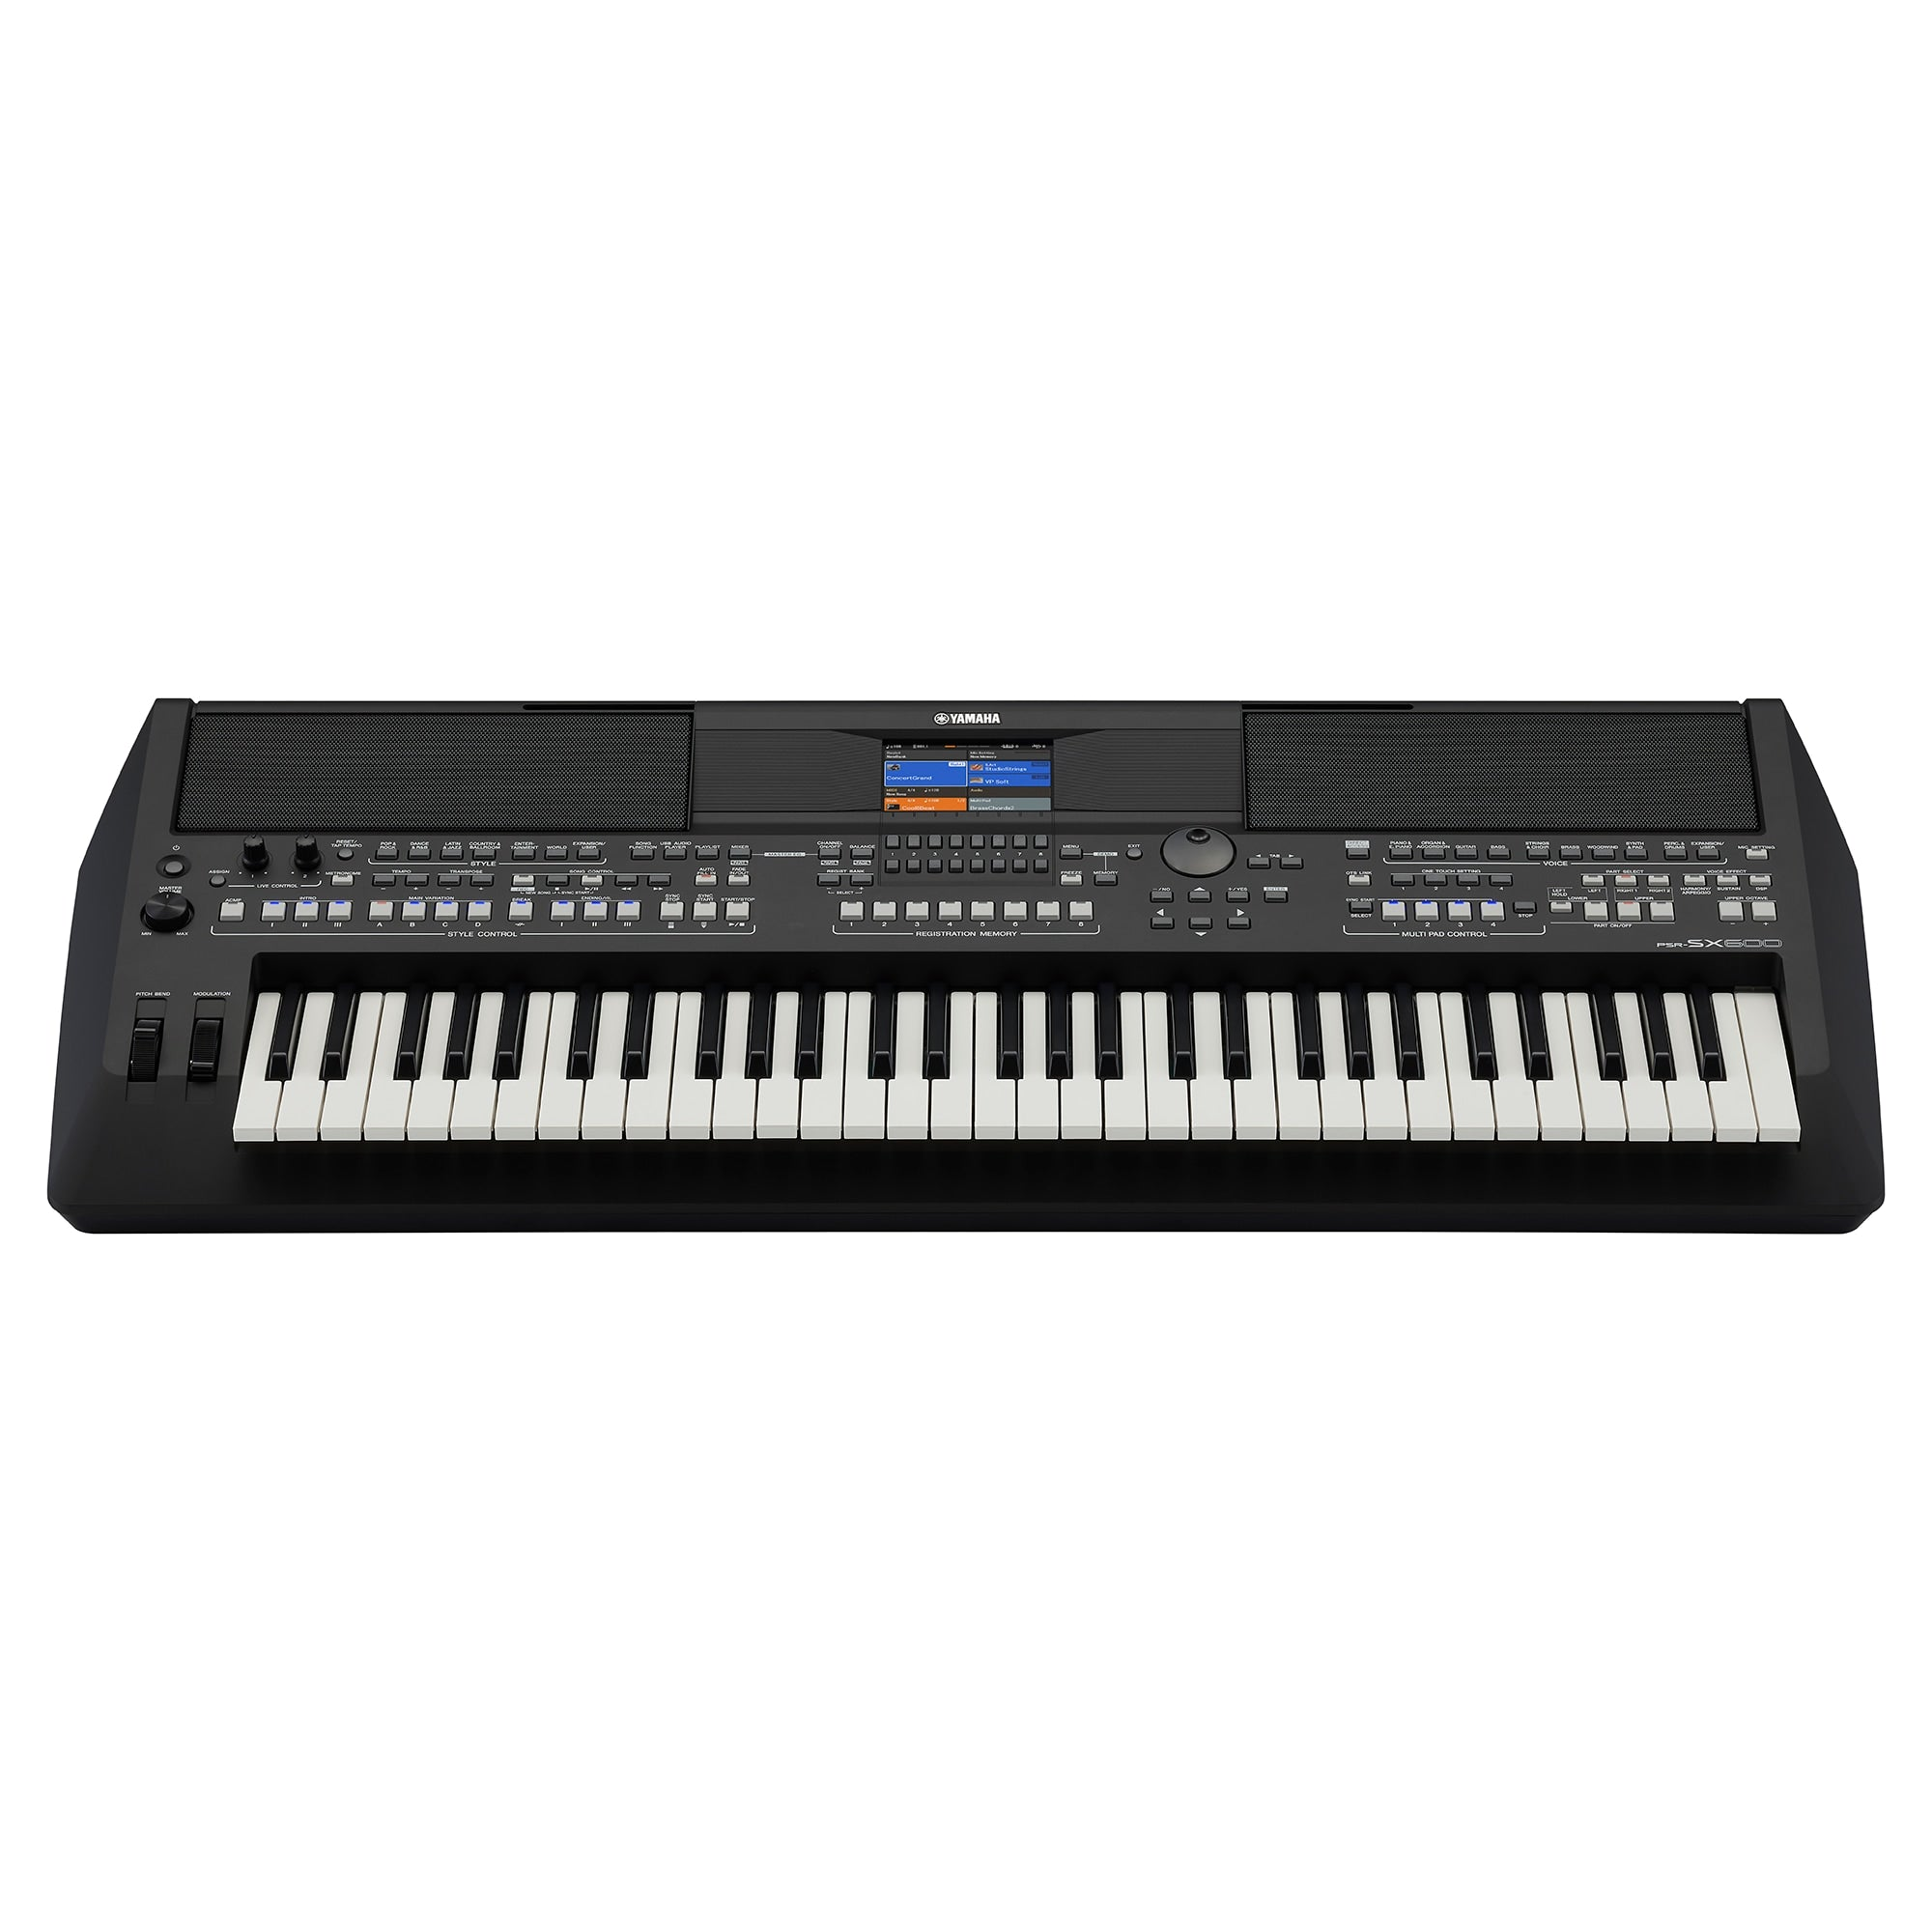 Yamaha PSRS X600 Arranger Keyboard >> New Model